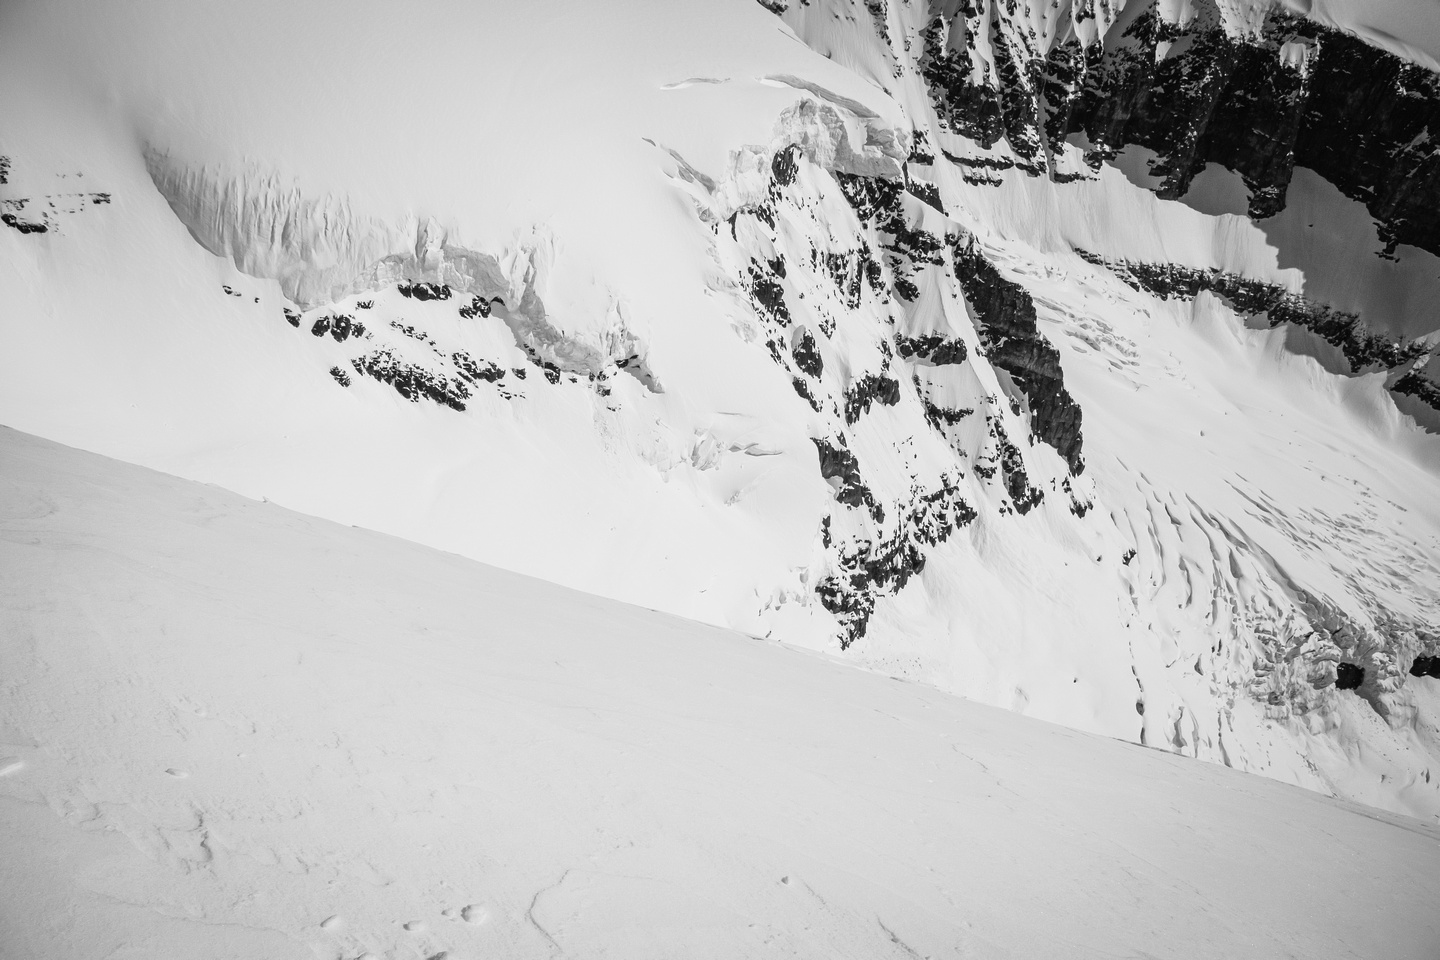 Believe it or not, people ski down this face! Ok - one person did it anyway... (Trevor Sexsmith).